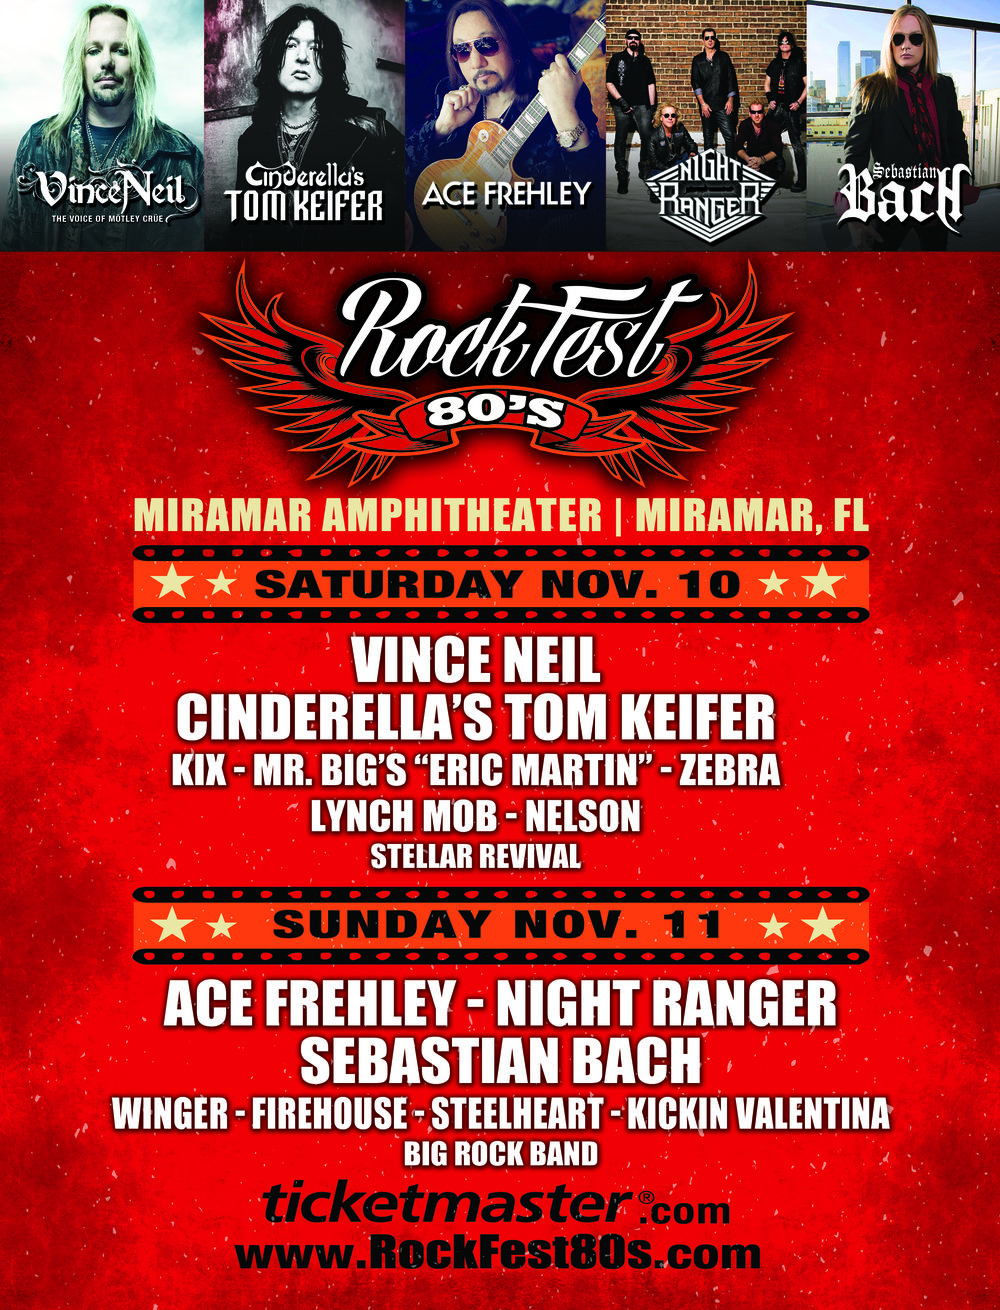 Want to win a pair of tickets to Rockfest 80s? Enter below! We will pick a winner on November 5th!